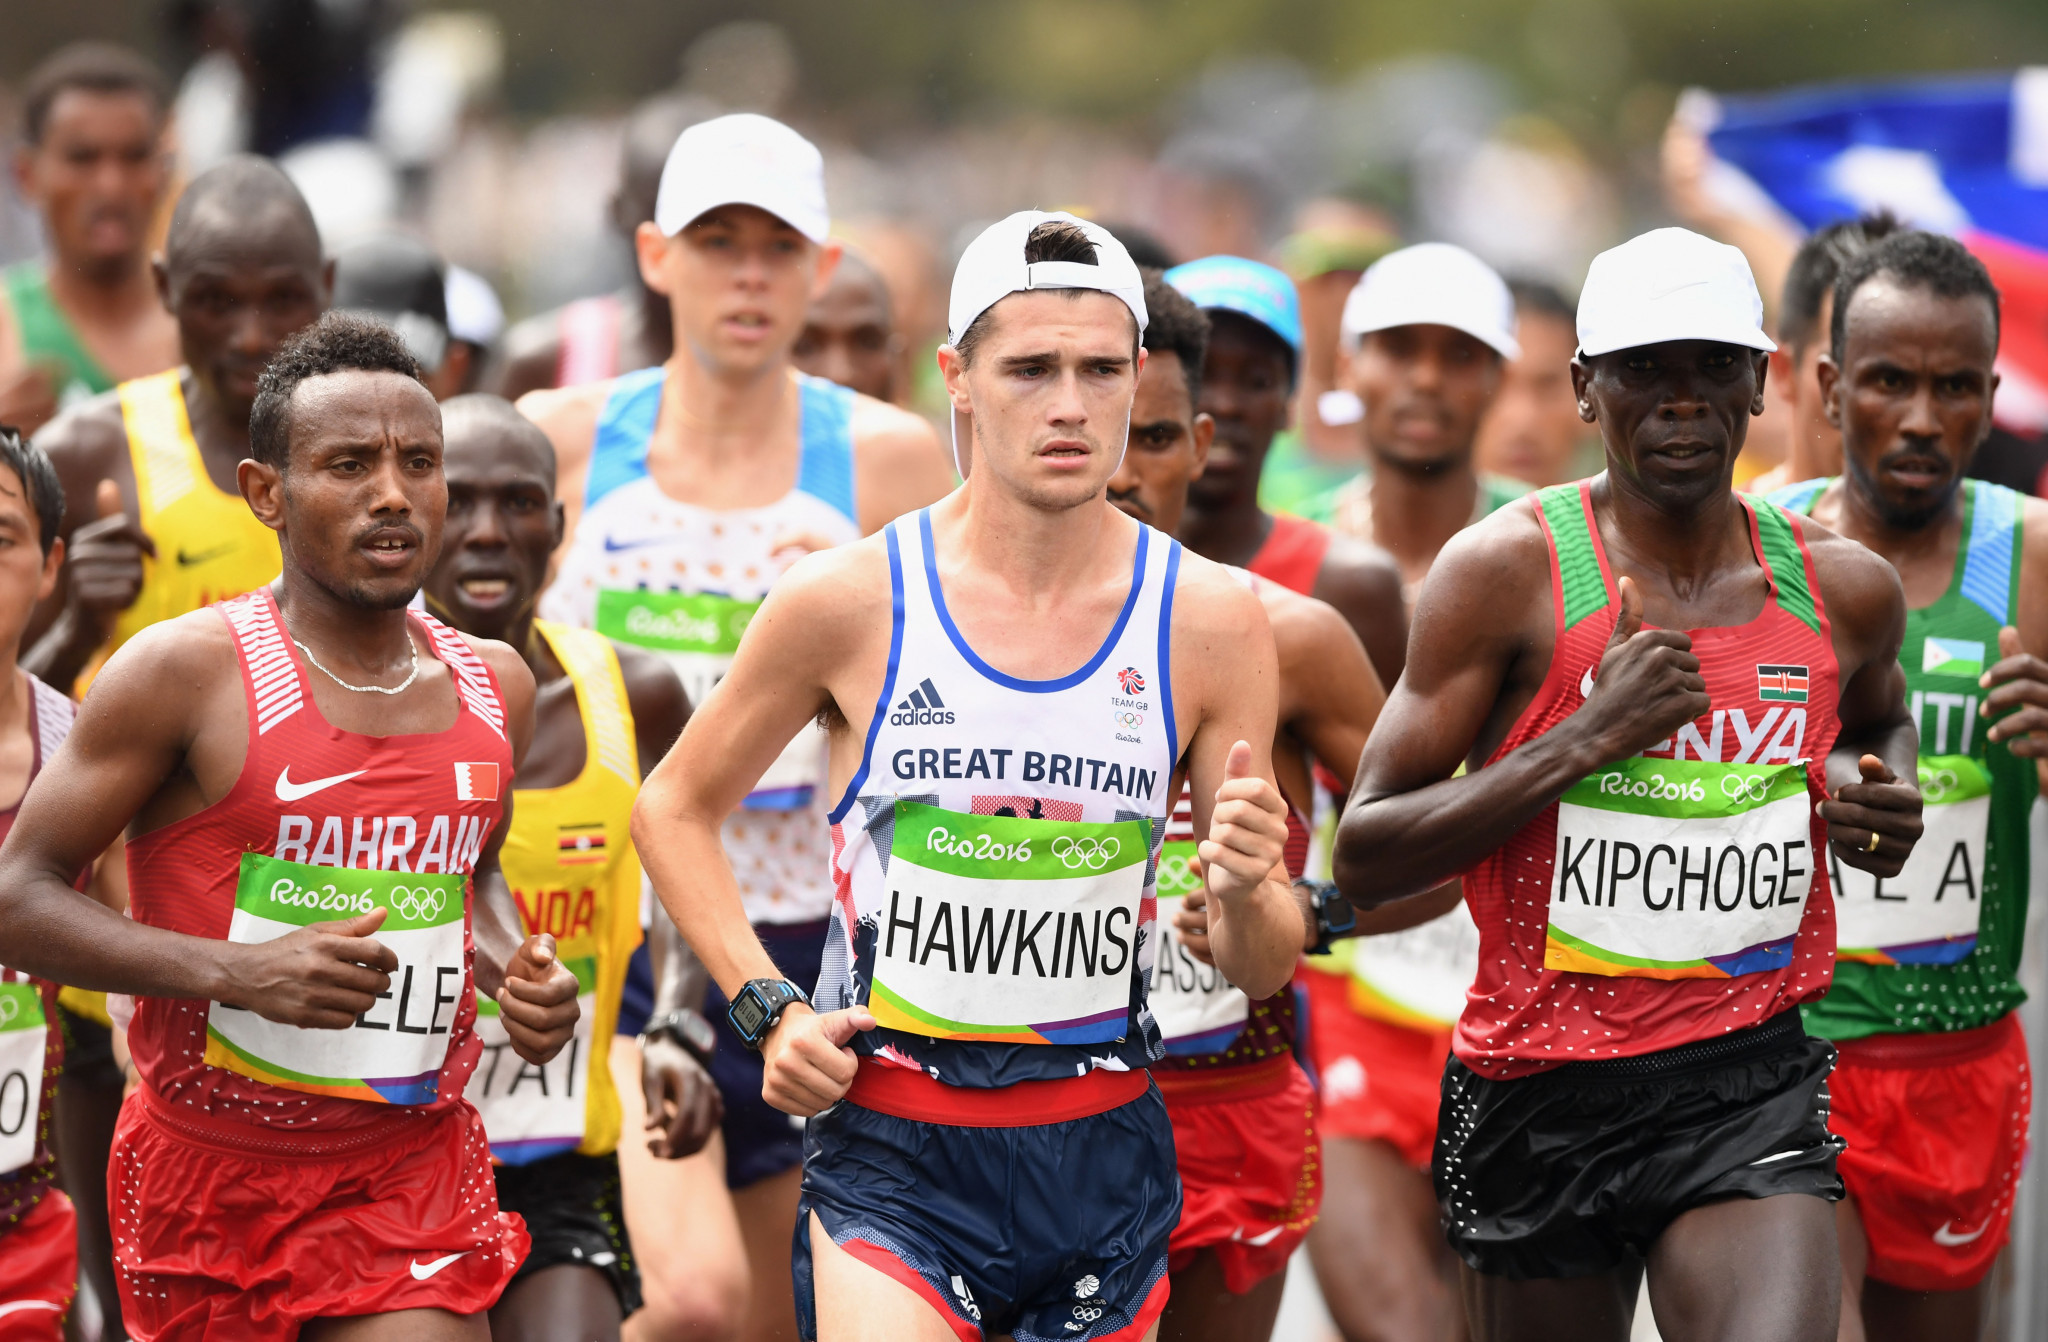 Callum Hawkins finished ninth in the Olympic marathon at Rio 2016 ©Getty Images